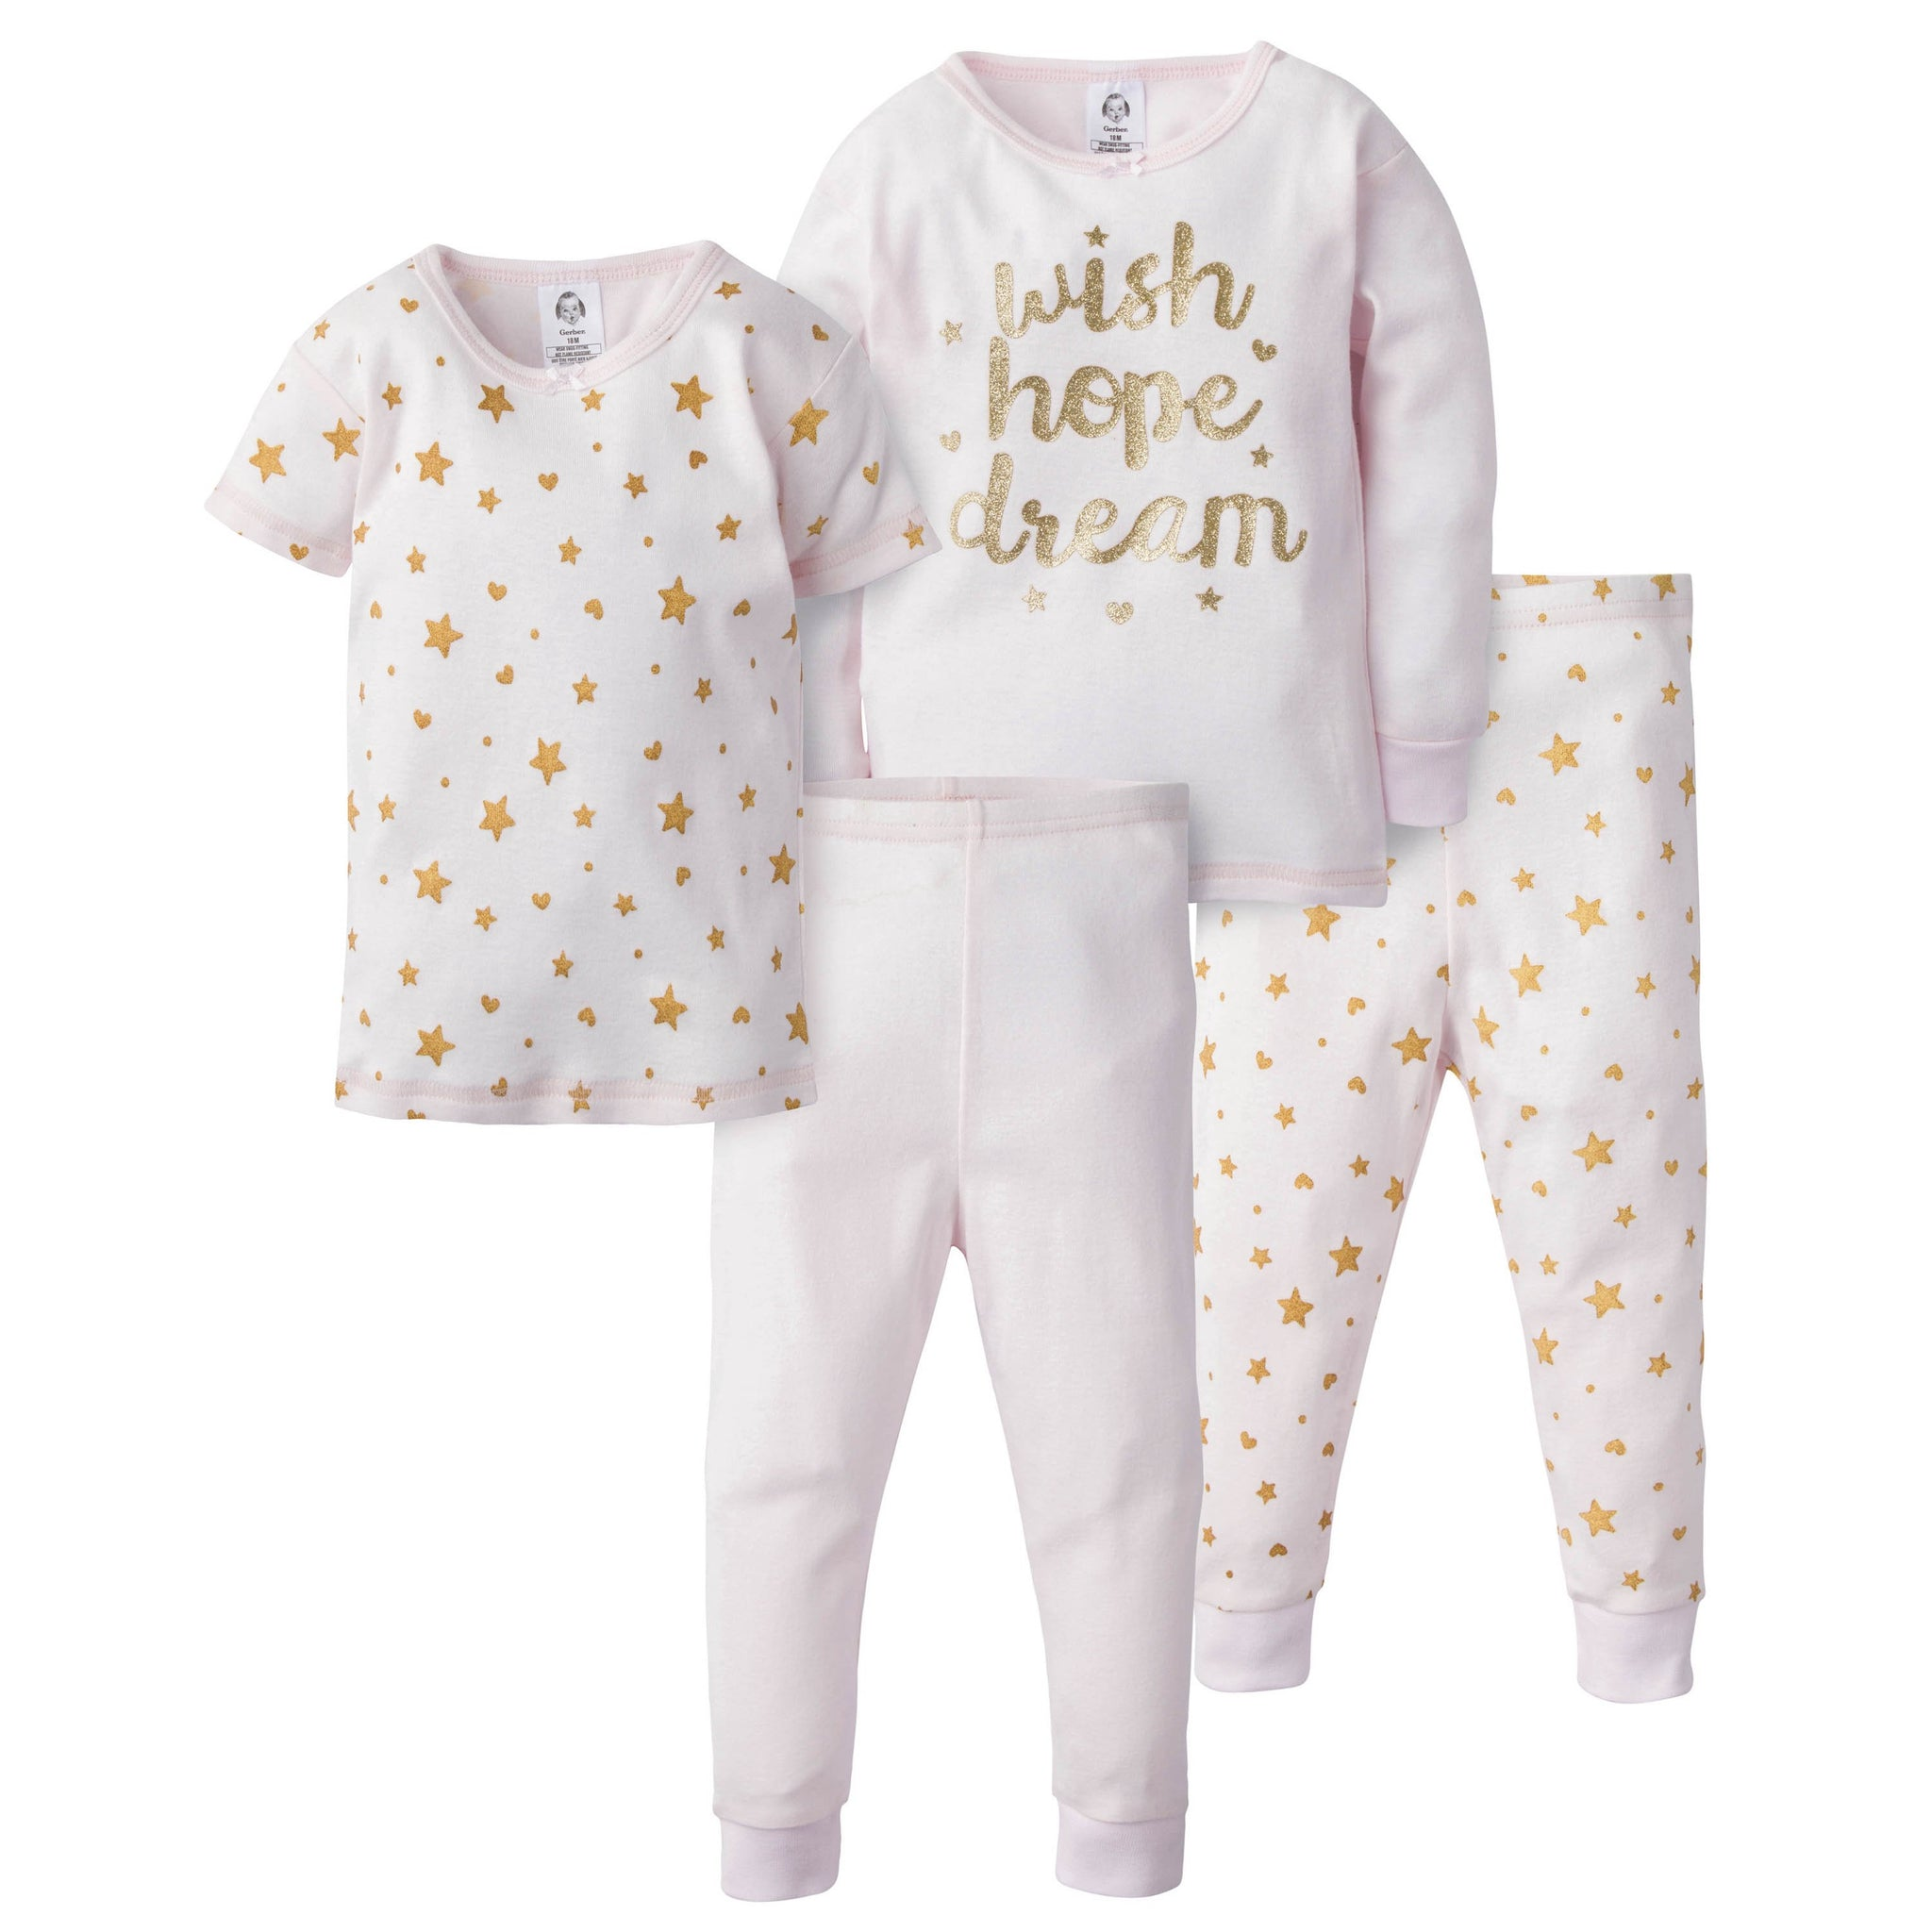 4-Piece Girls Cotton Pajamas - Wish Hope Dream